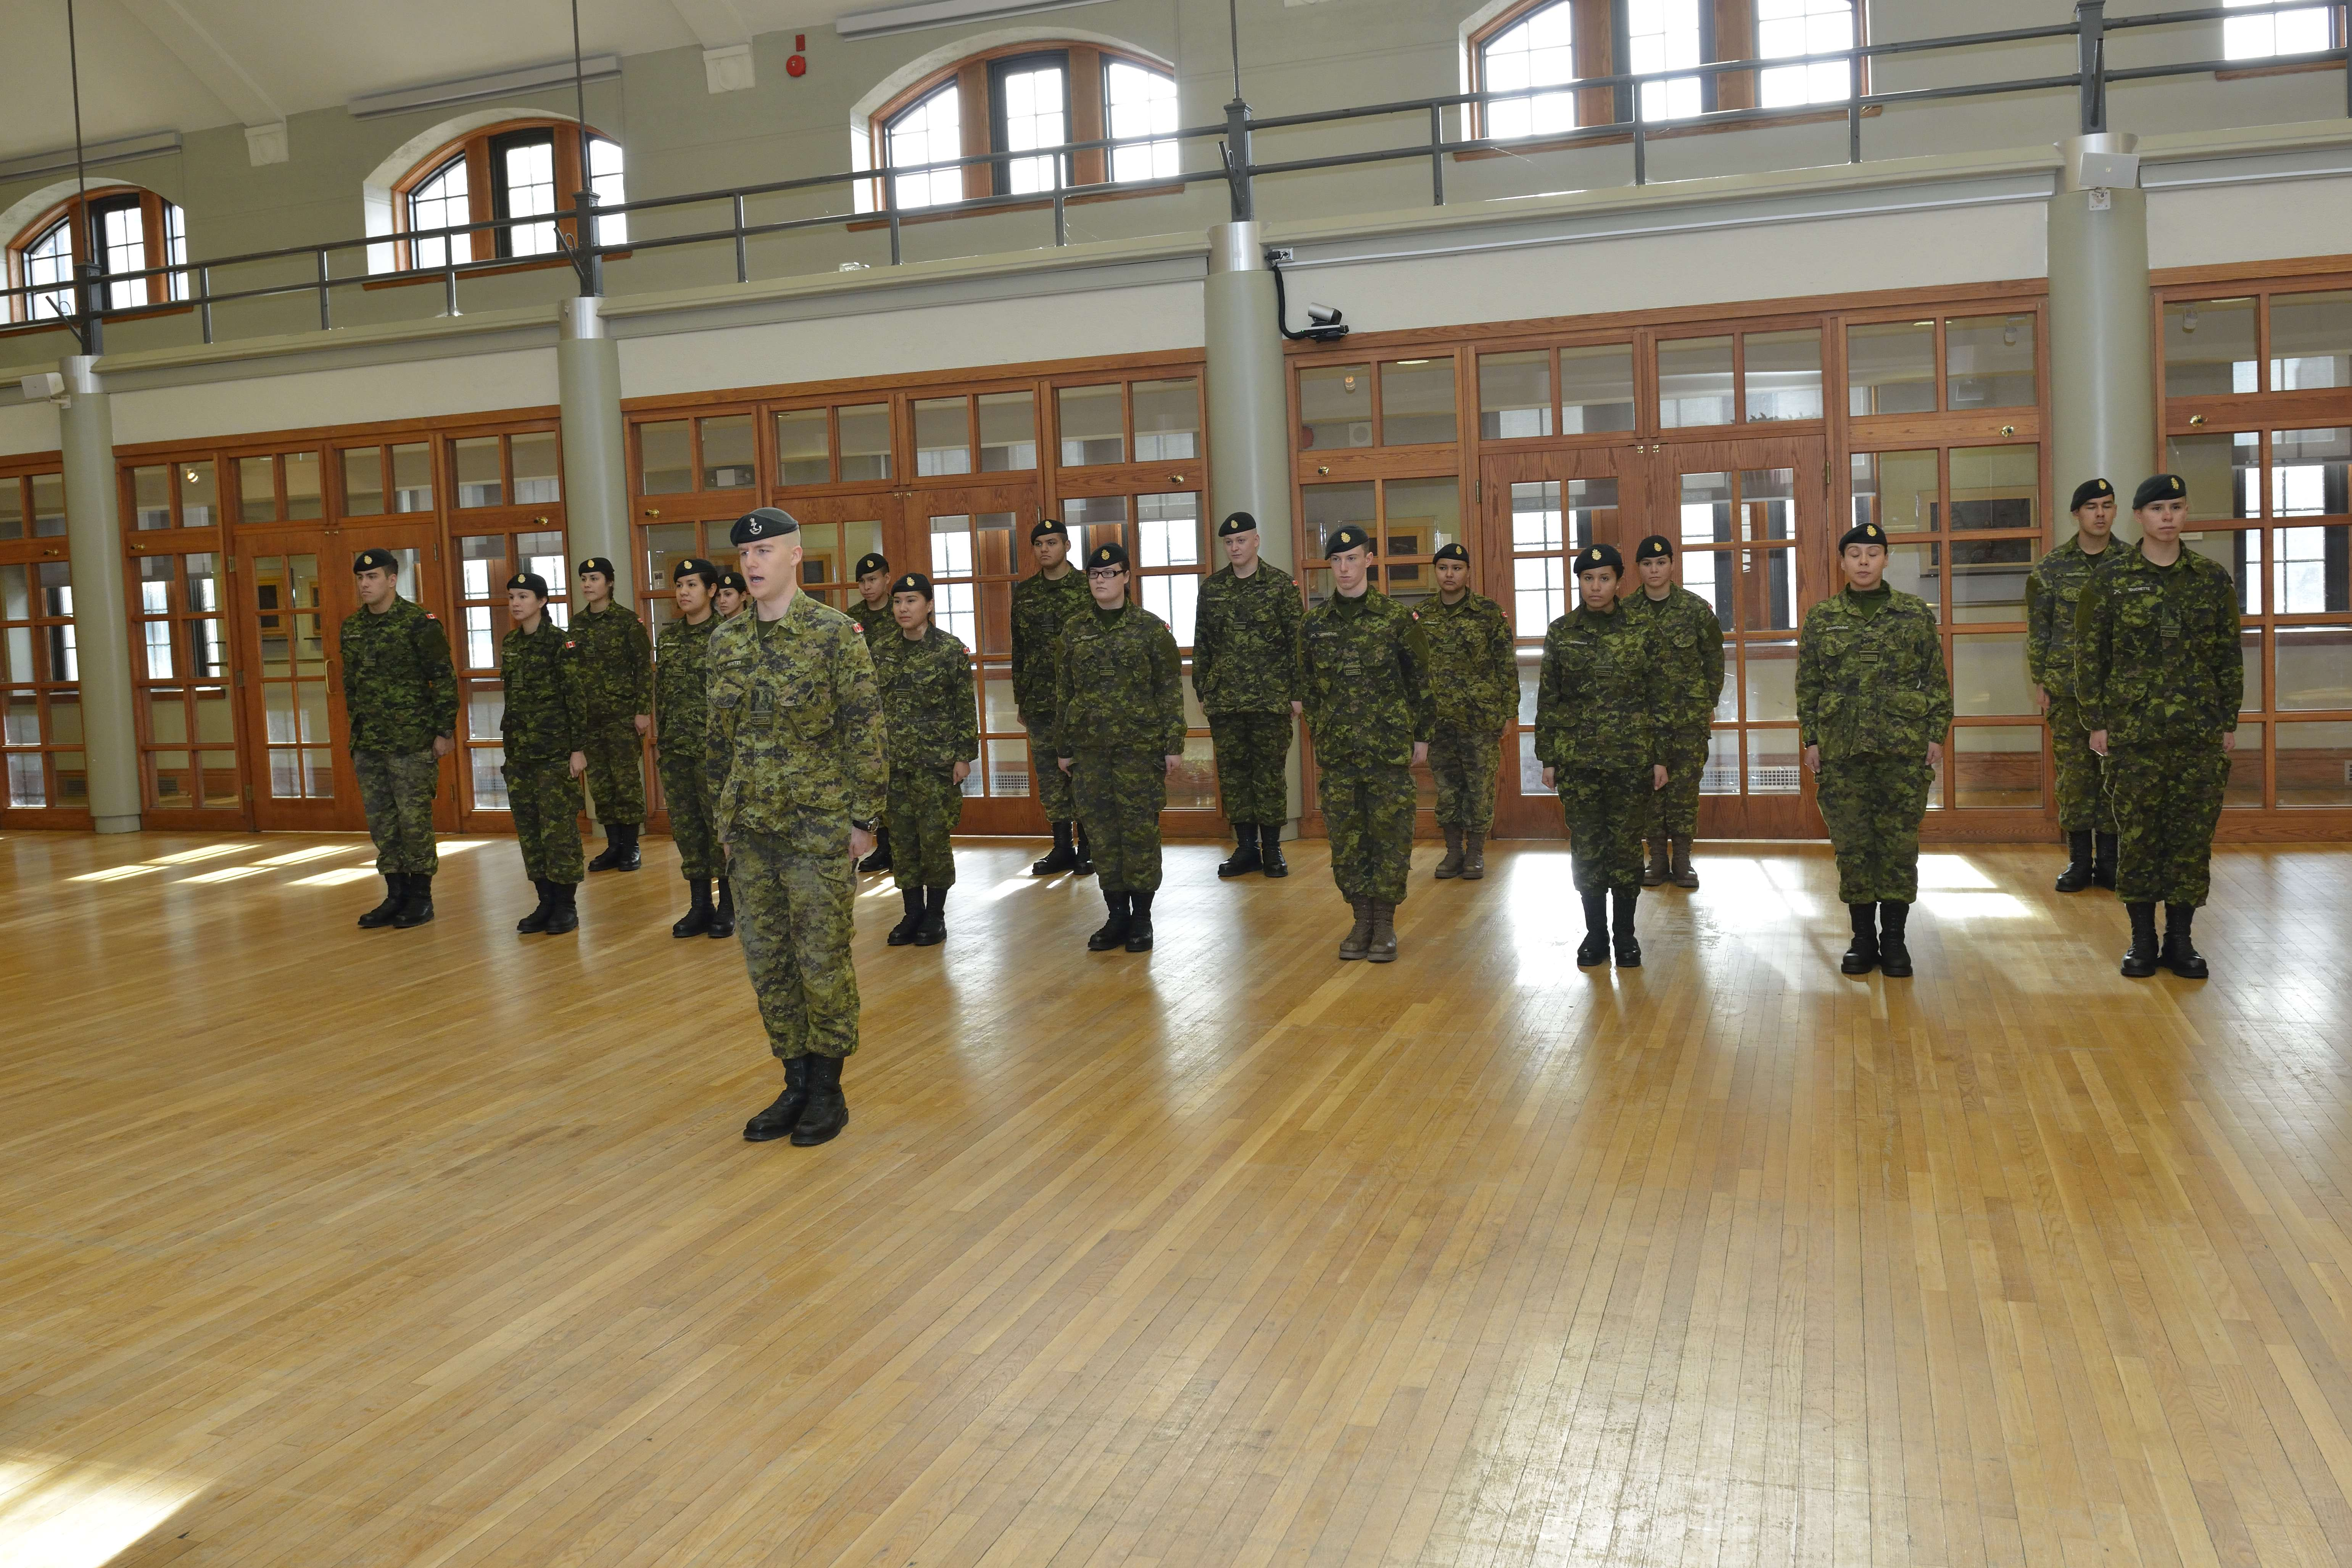 Officer Cadet Huxton calls drill for the students from the Aboriginal Leadership Opportunity Year at the Royal Military College in Kingston, Ontario on December 2, 2014. Photo by: MCpl Kurt Visser, Directorate of Army Public Affairs